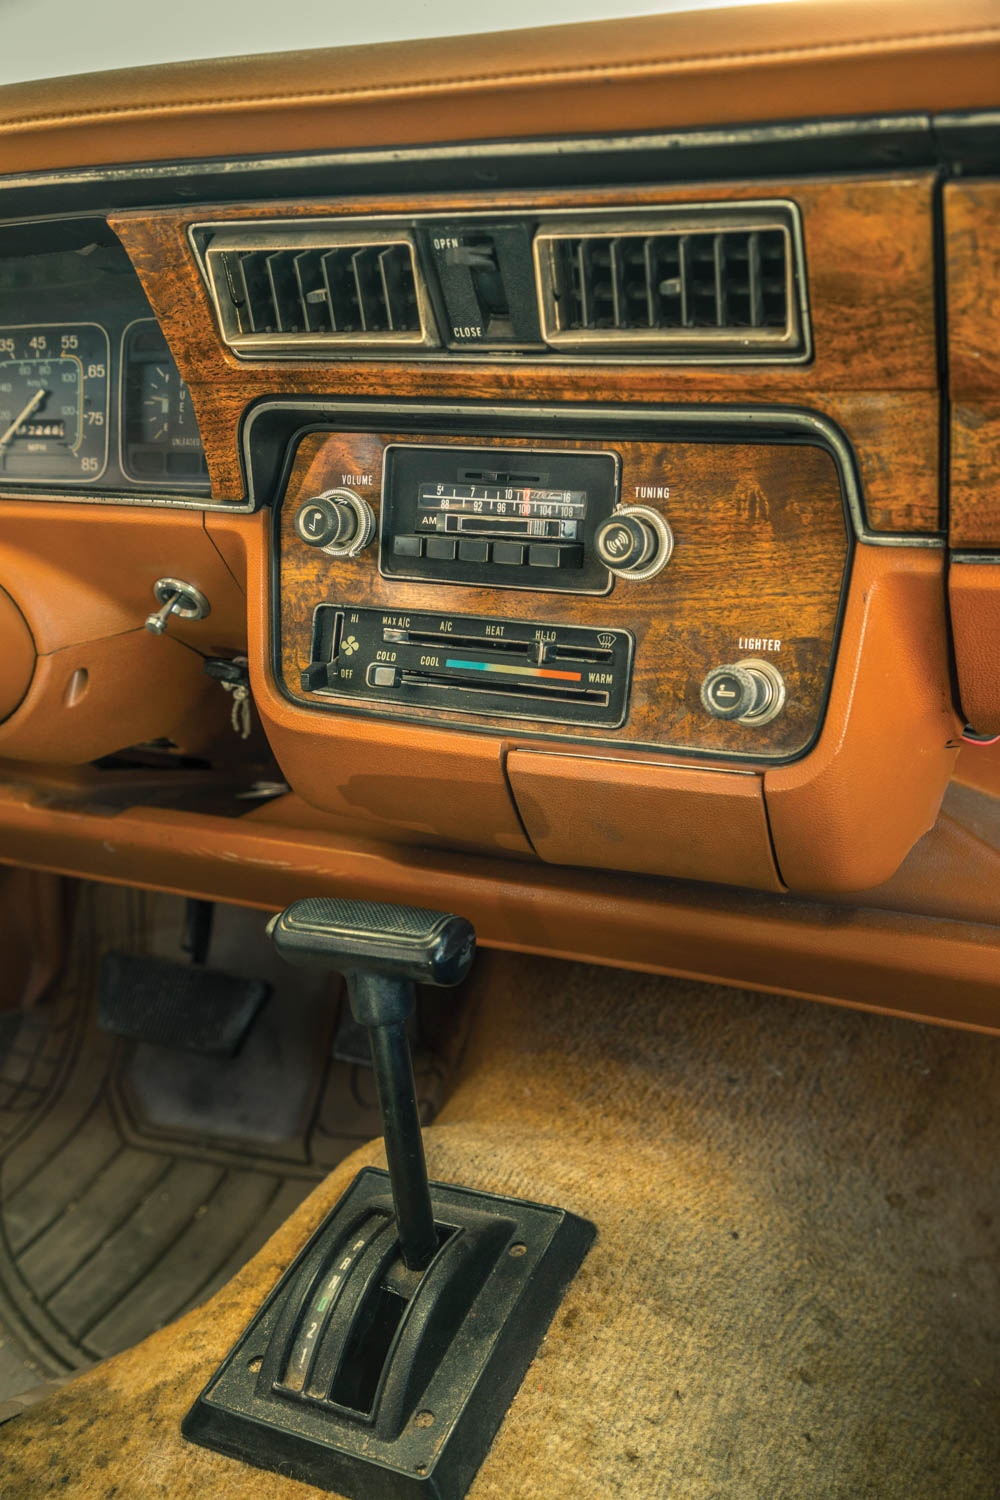 The Eagle's center dash pod floats above all with generous wood trim.